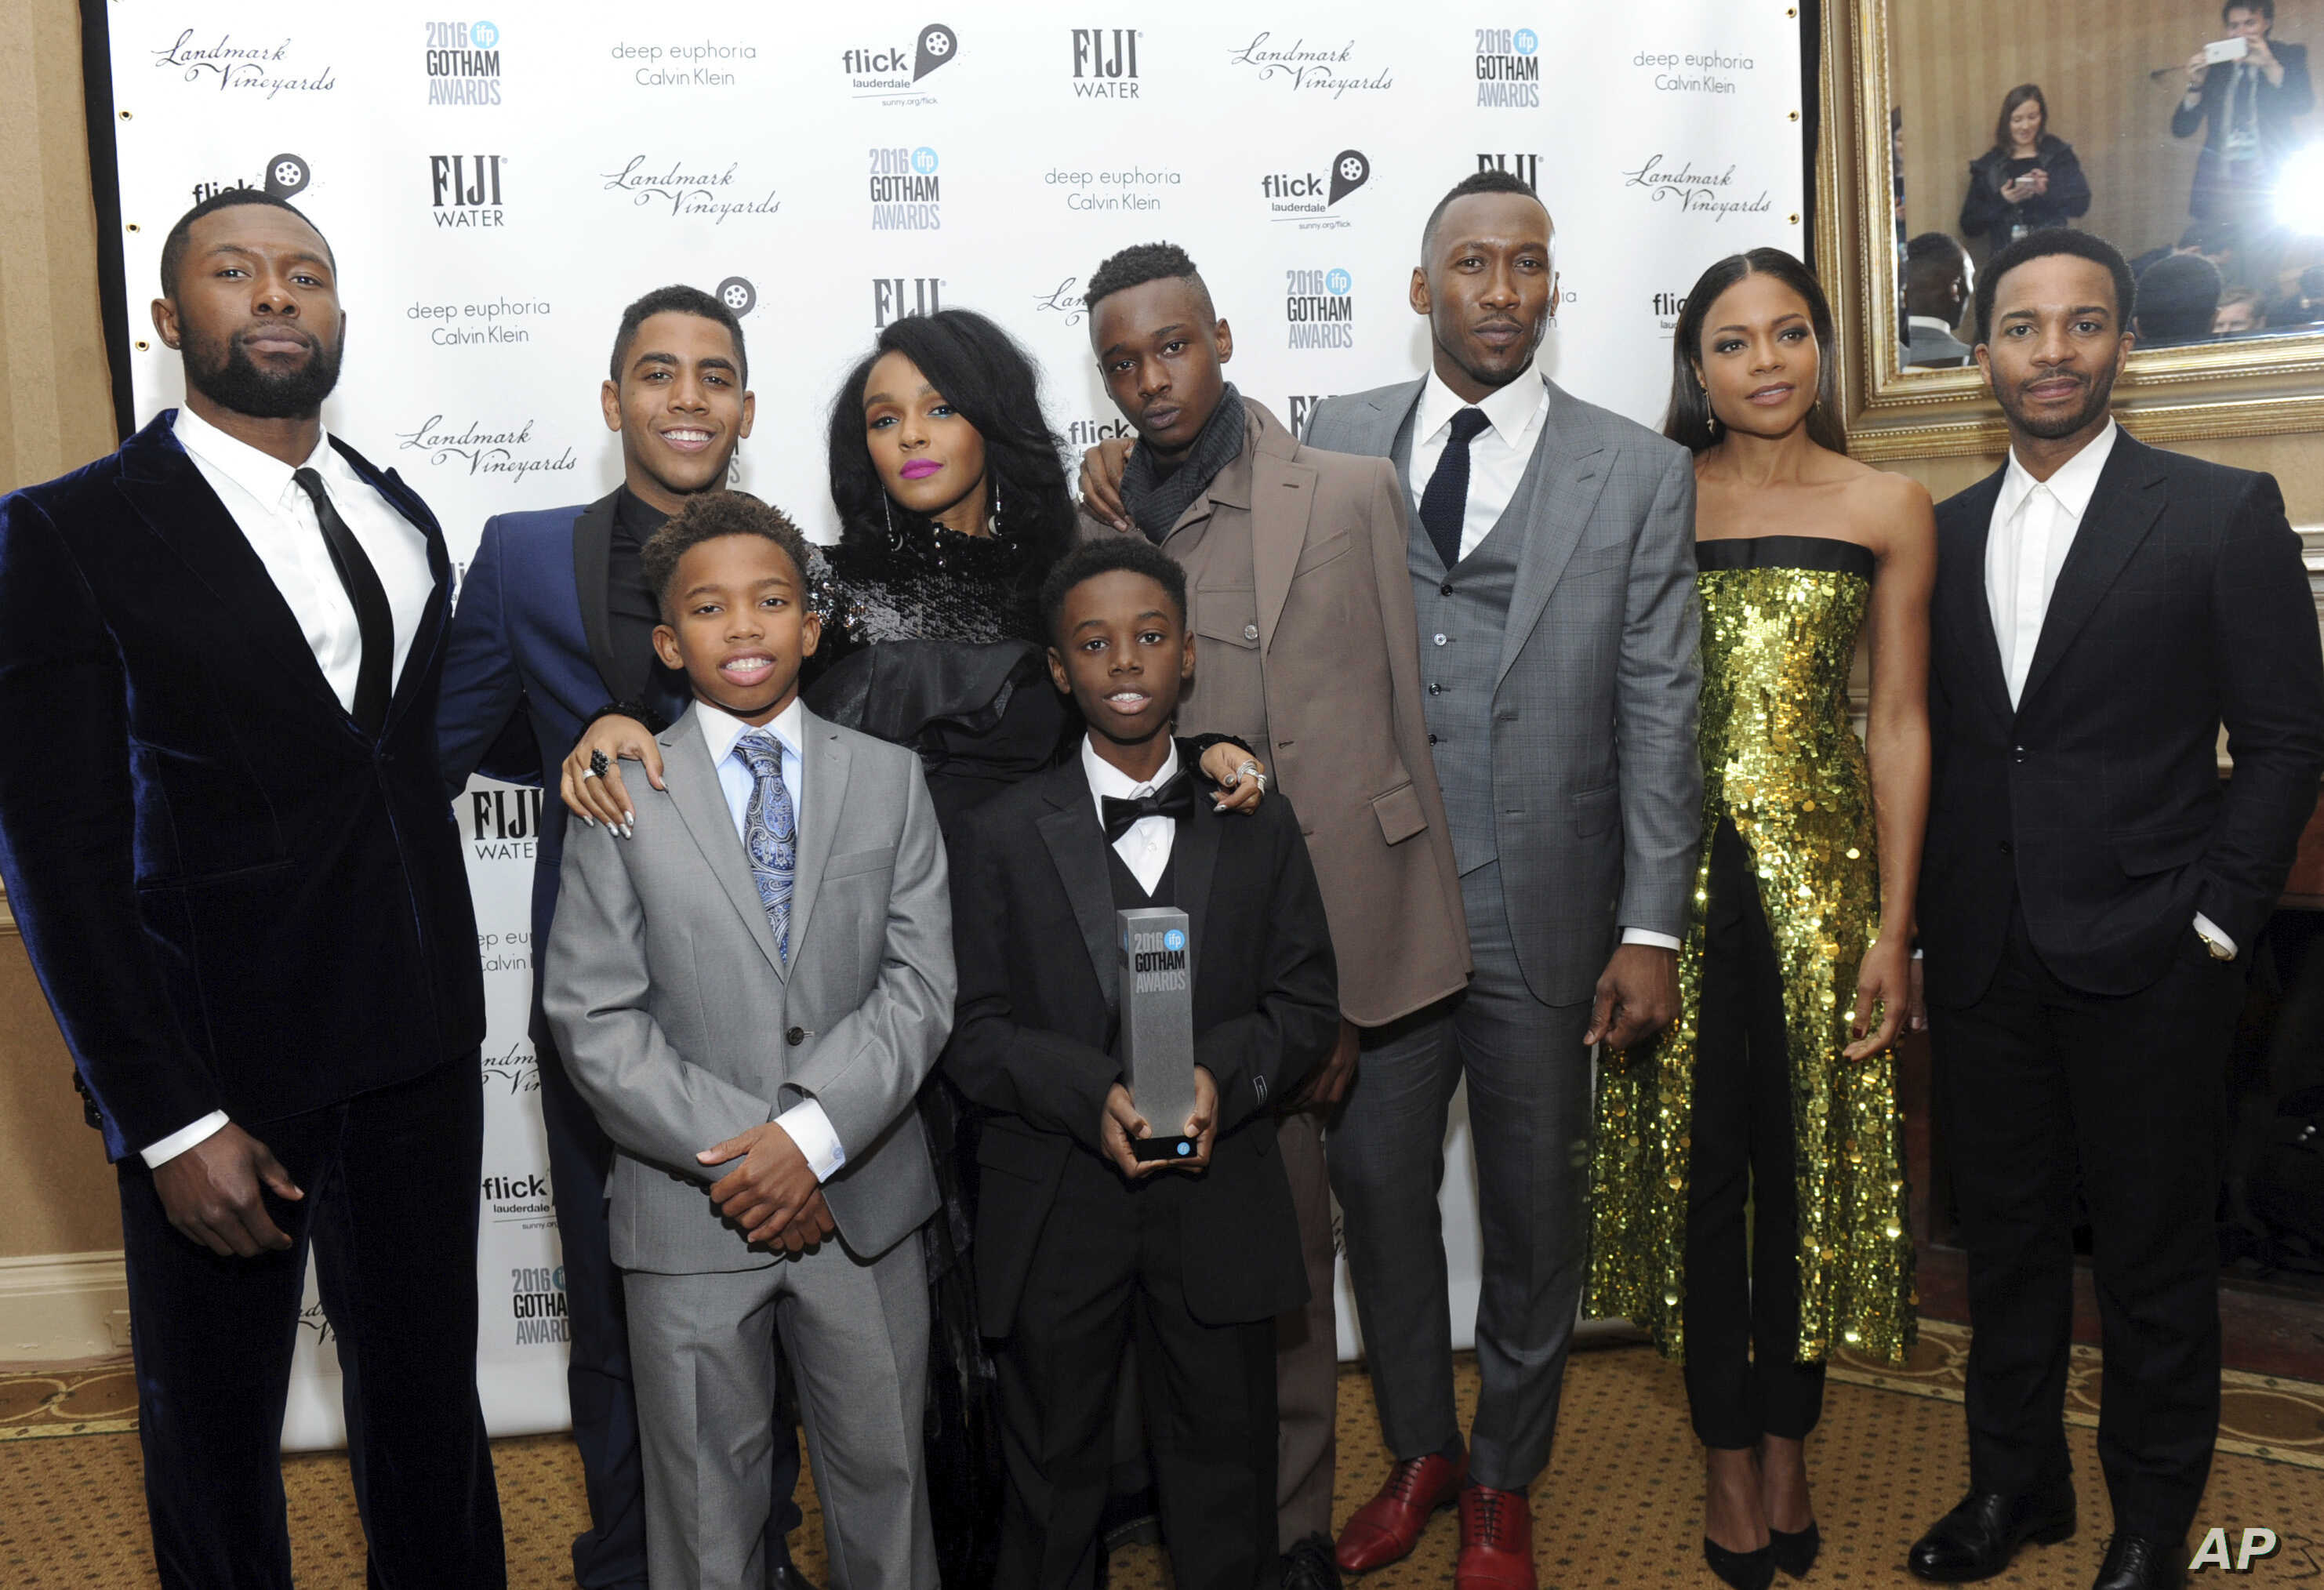 The cast of Moonlight, winners of the Jury Award for Ensemble Performance, pose for a photo at the IFP Gotham Independent Film Awards, Nov. 28, 2016, at Cipriani Wall Street in New York.